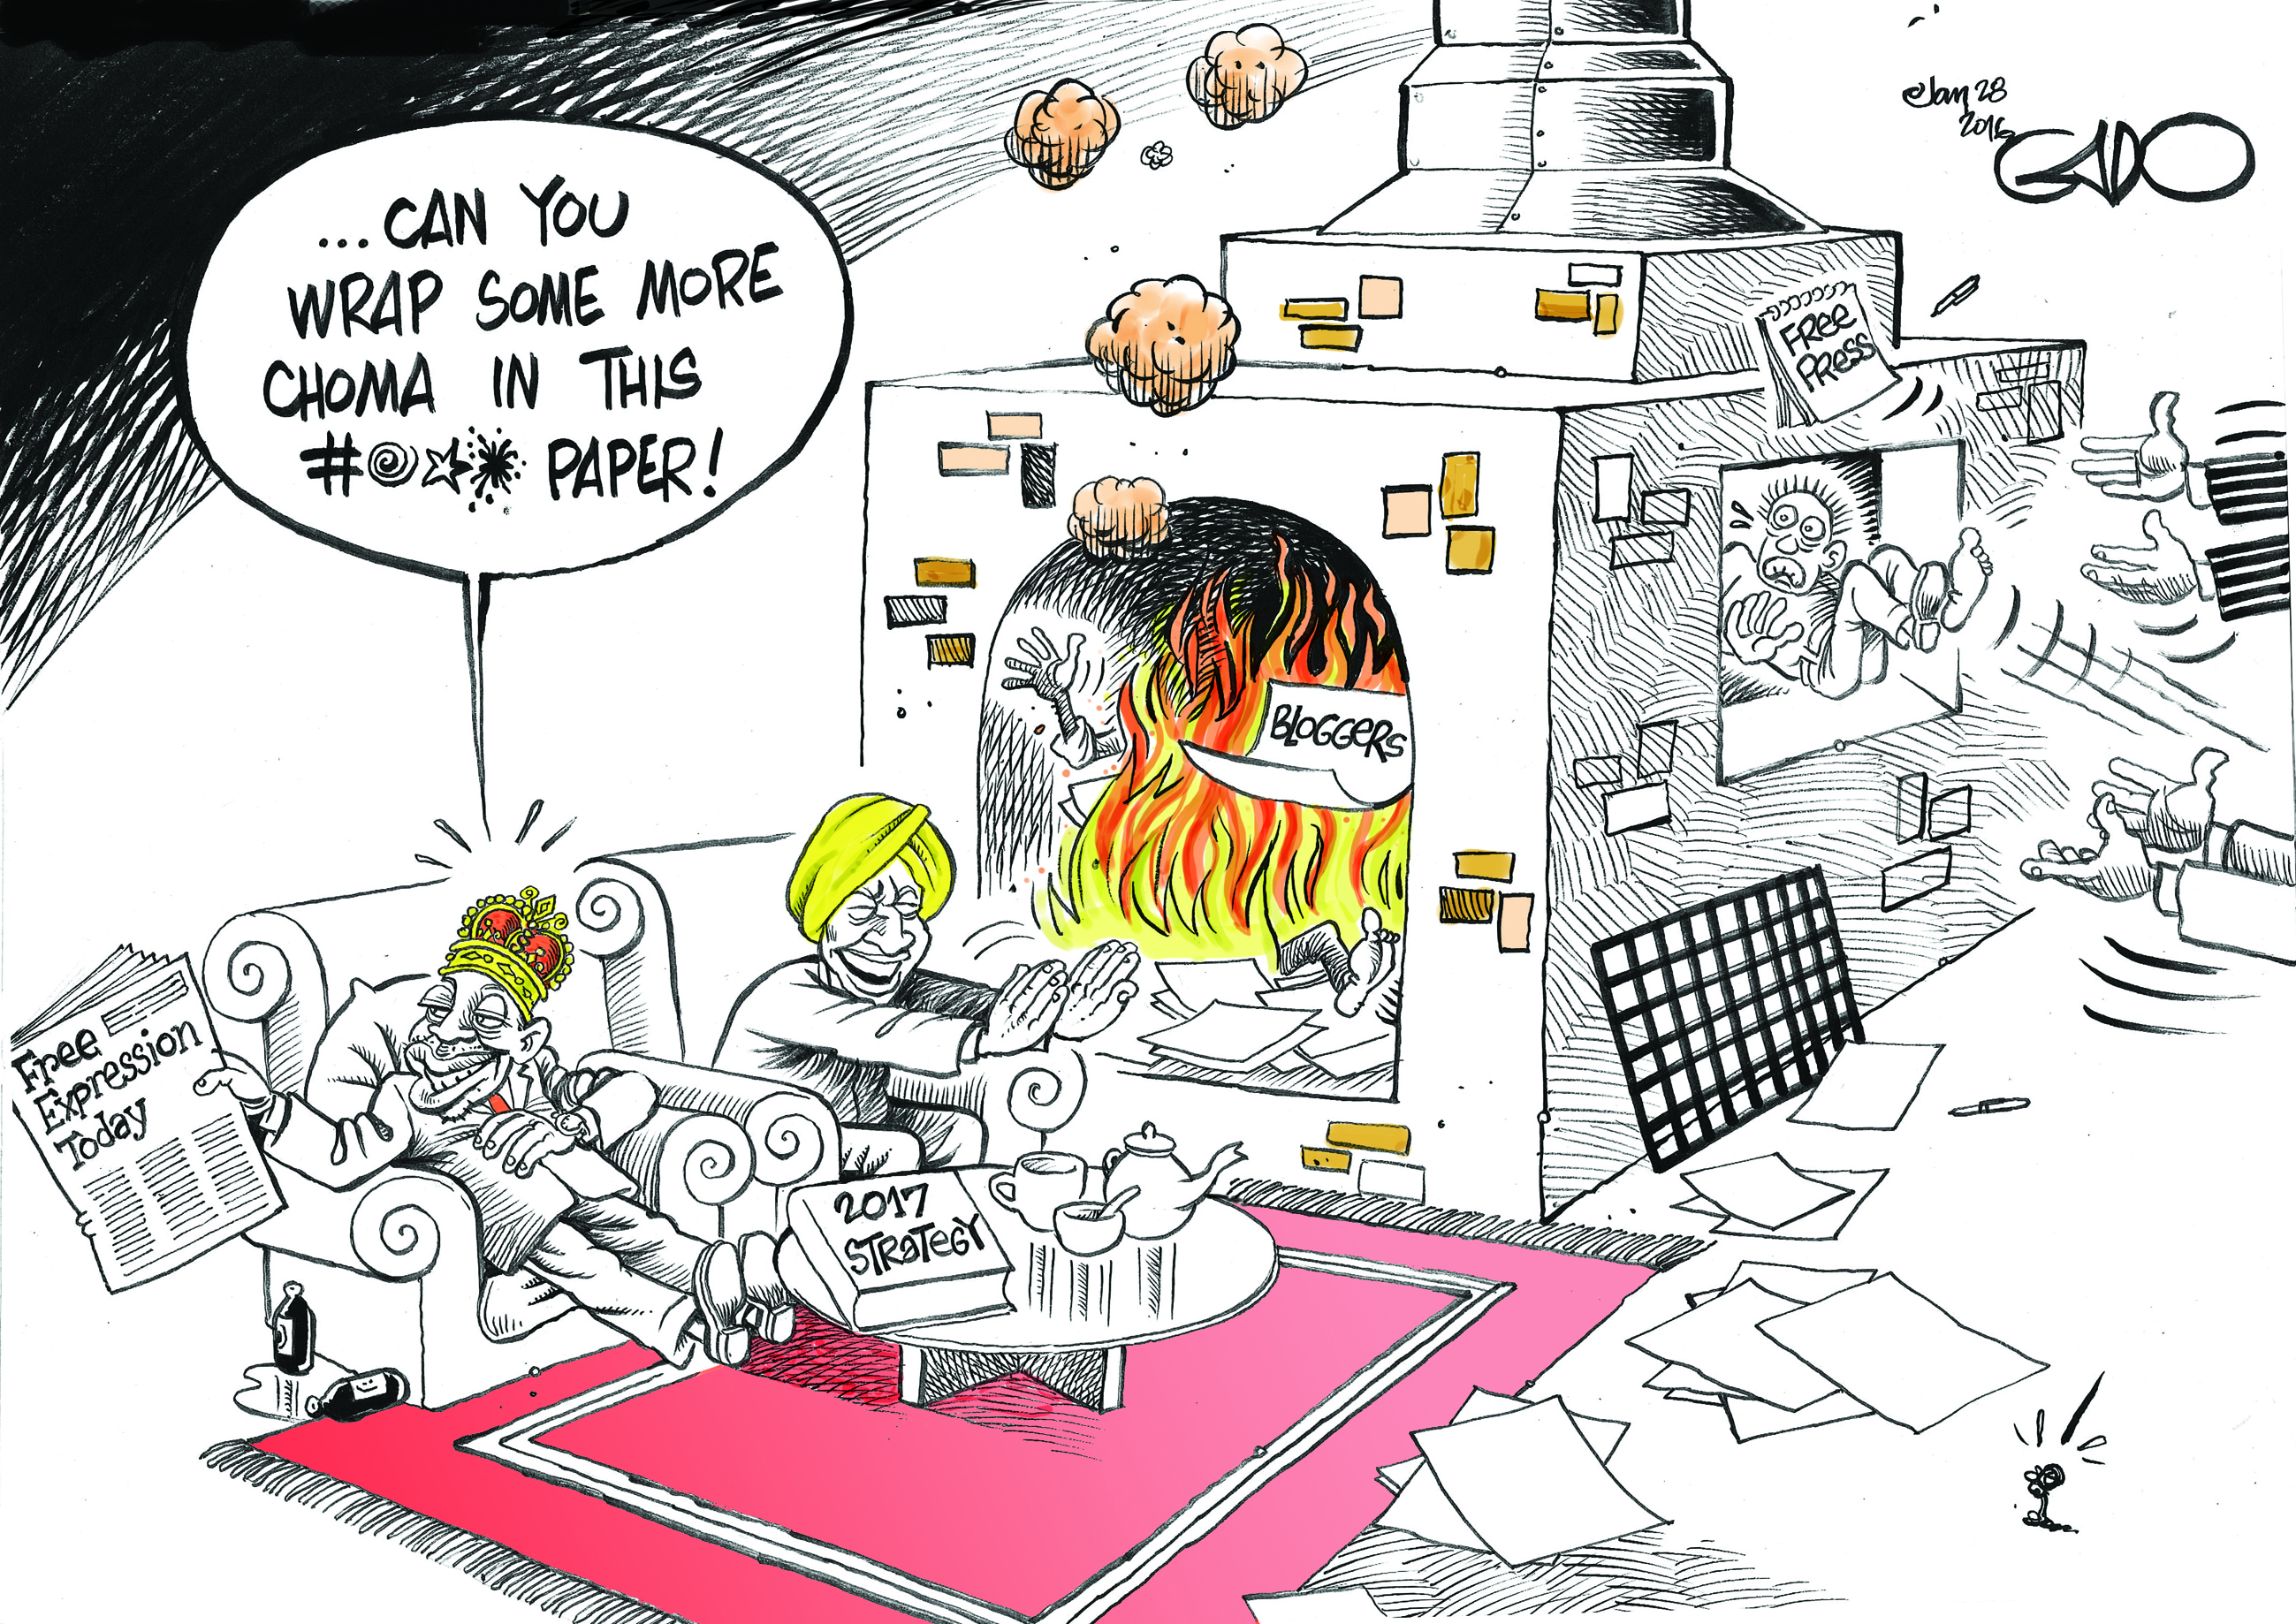 Kenya: Cartoonist Dismissed from Paper Must be Reinstated or Compensated